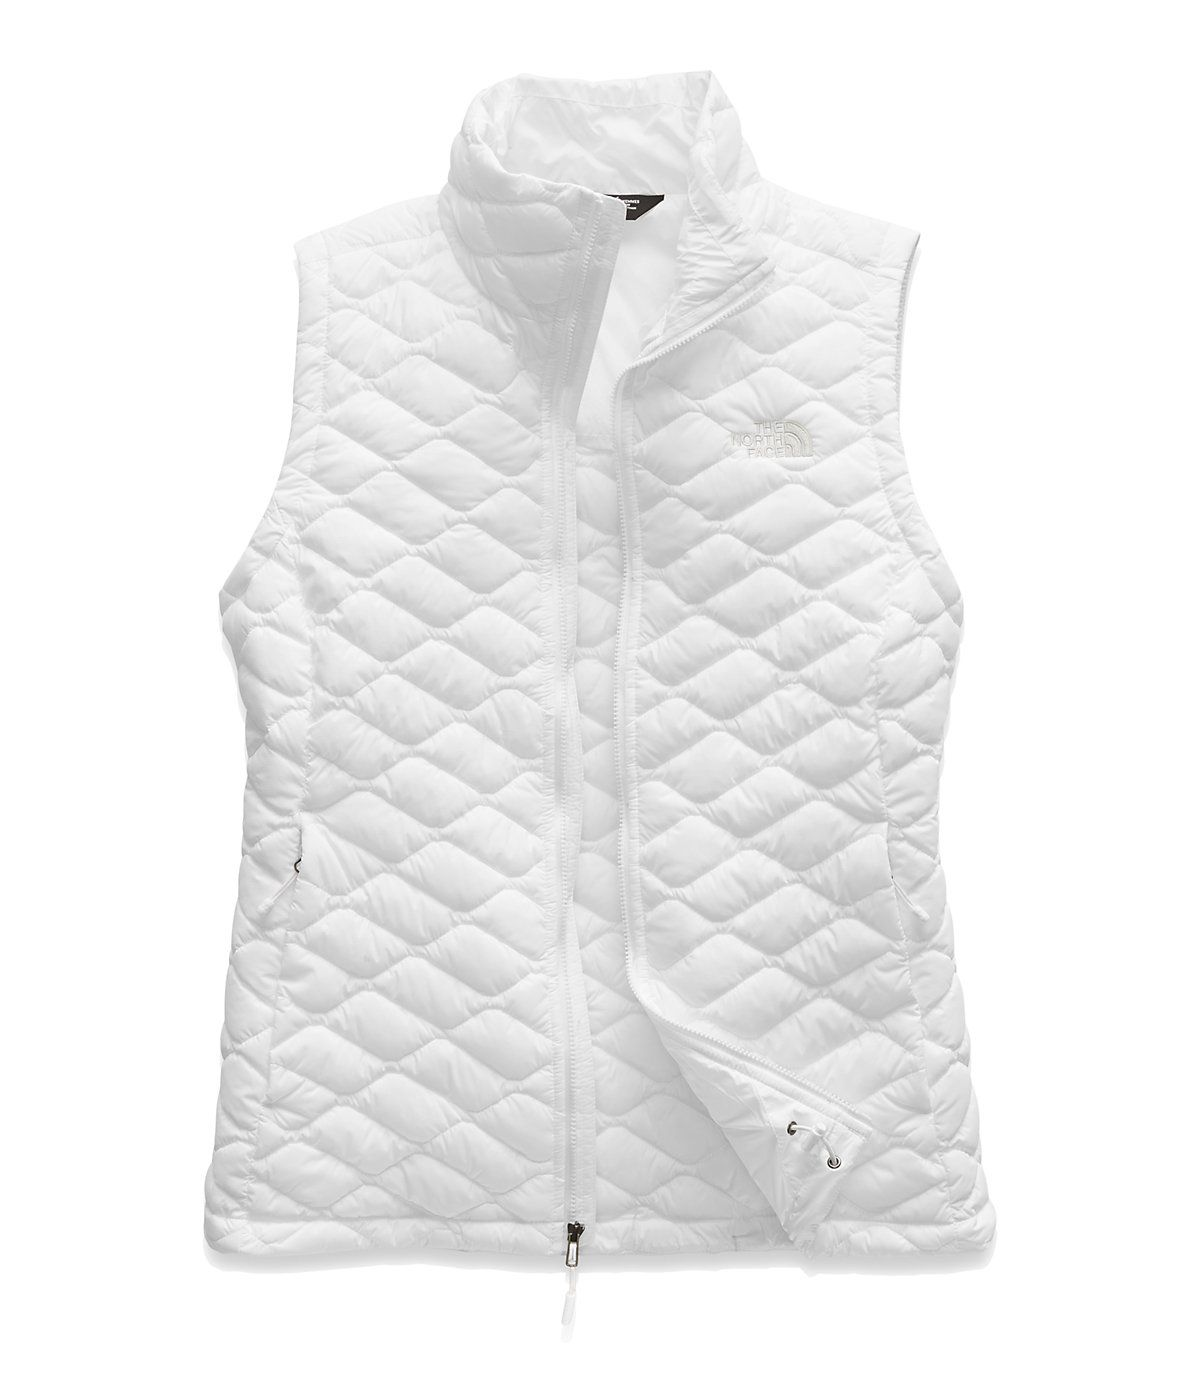 f5dad2f473b0 The North Face Women s Thermoball Vest